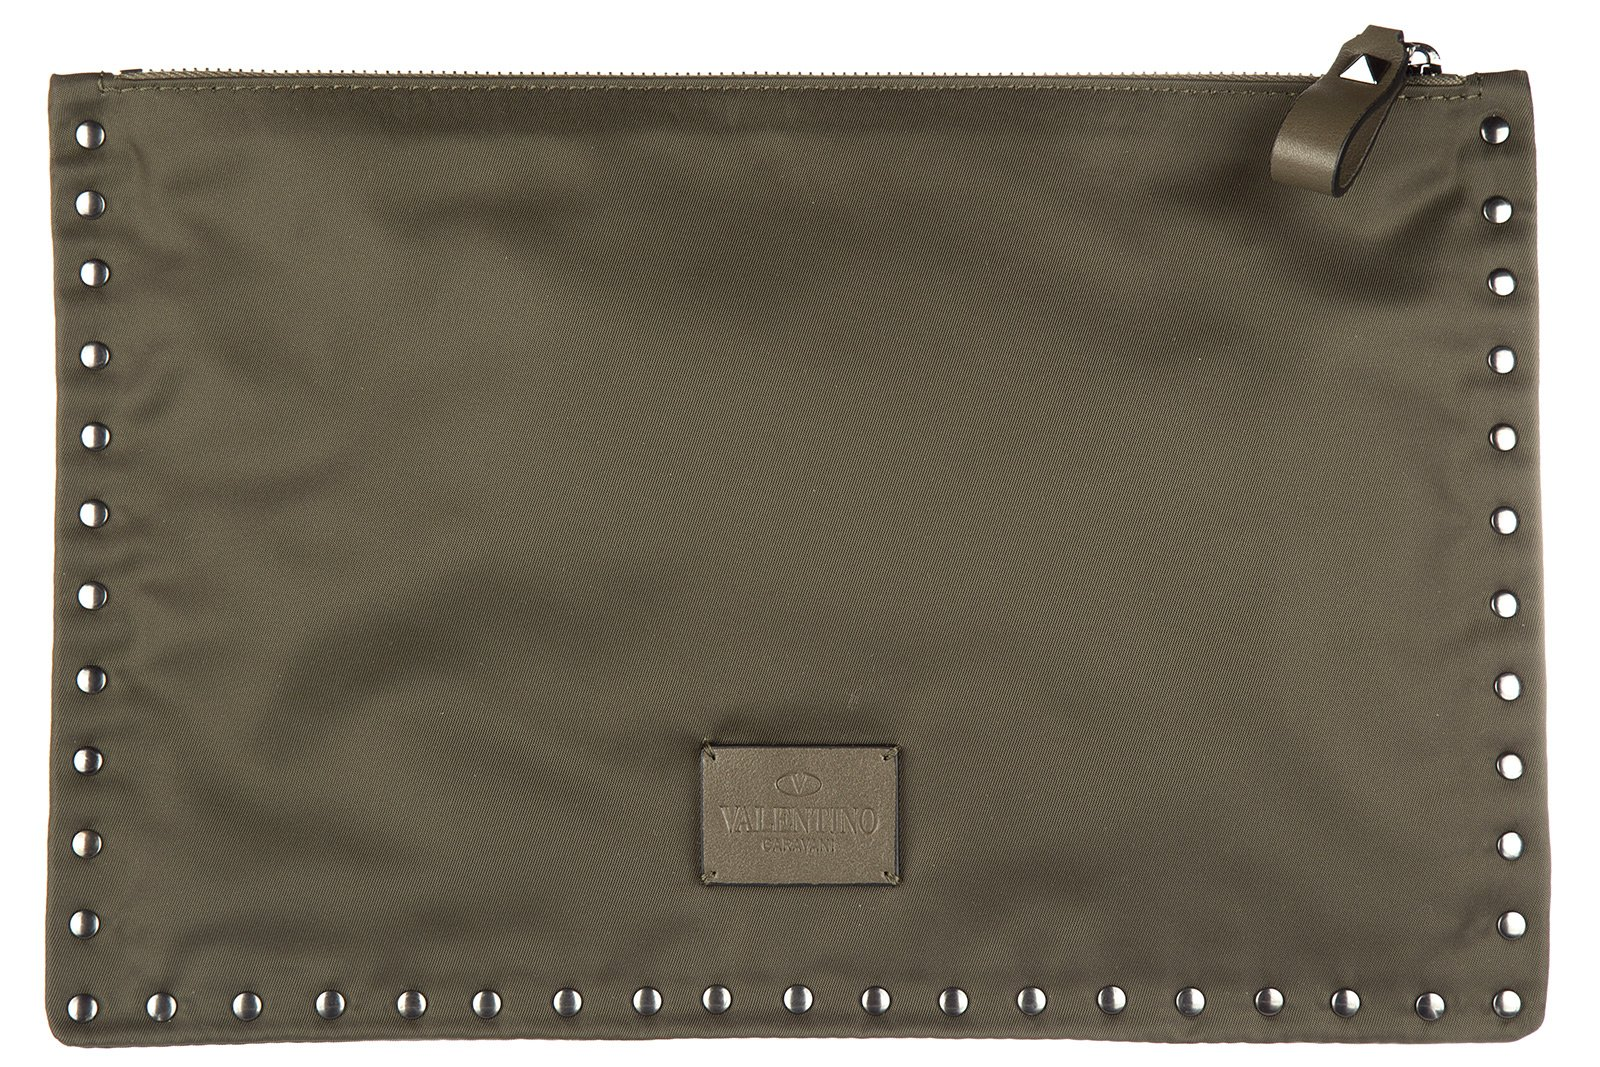 Valentino men's travel document passport case holder green